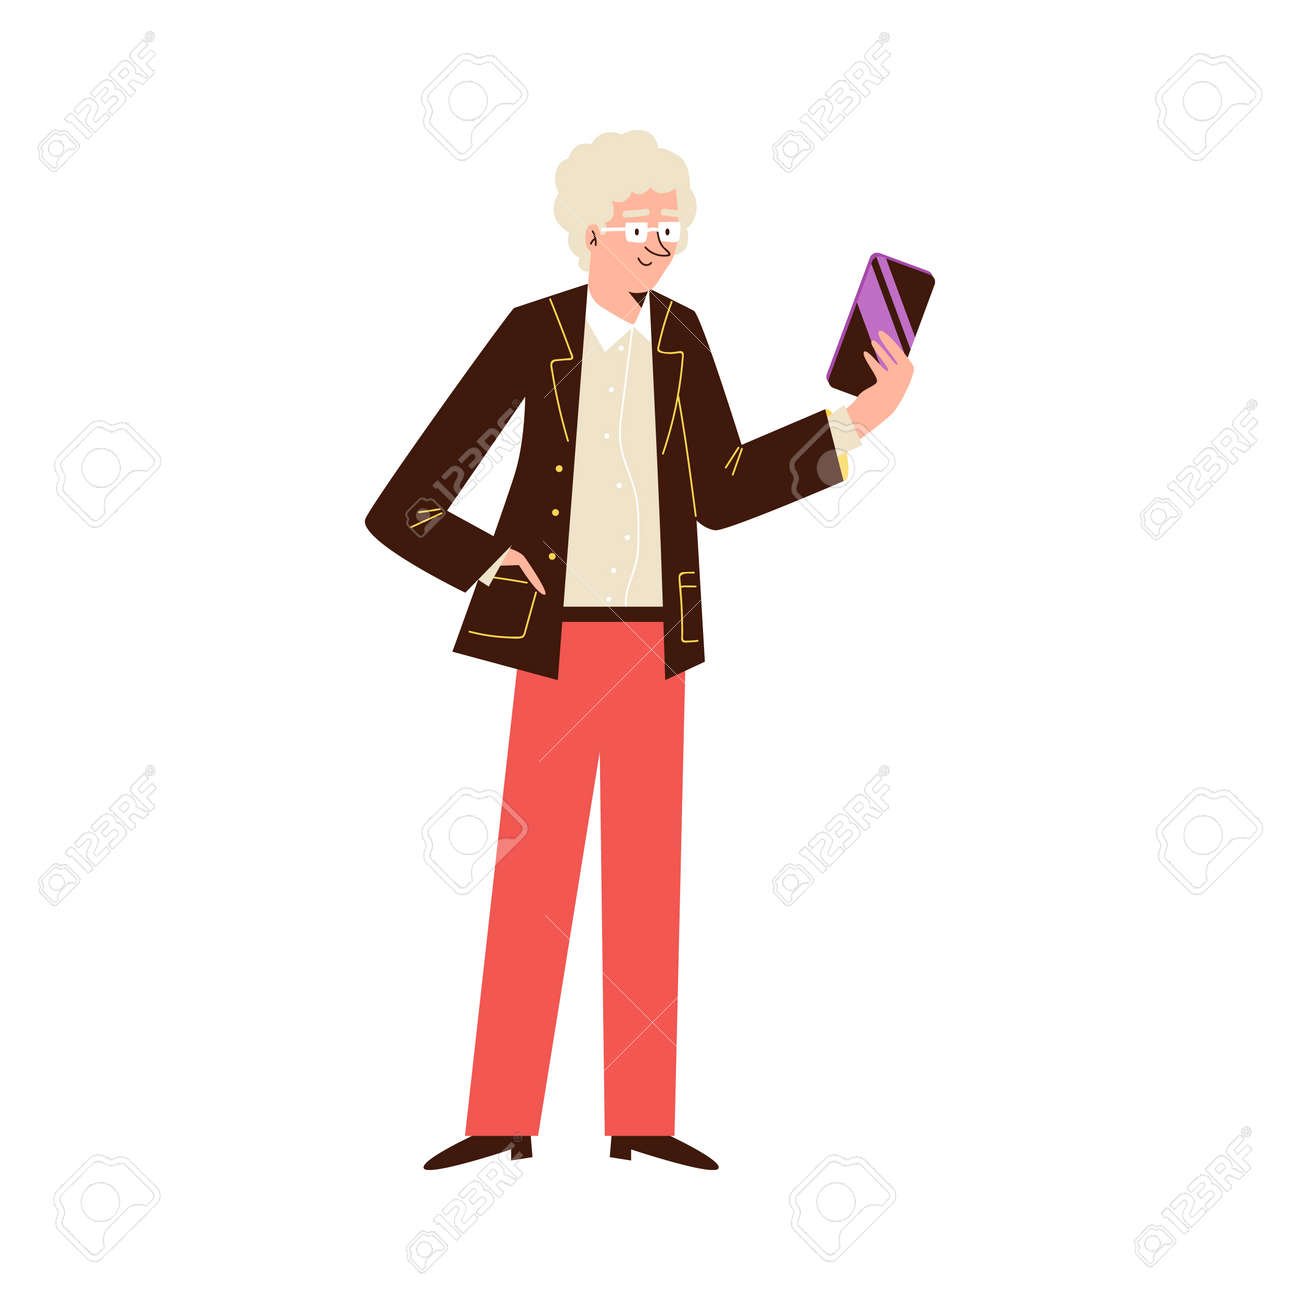 Elderly man standing and looking at phone, flat vector illustration isolated - 173346771